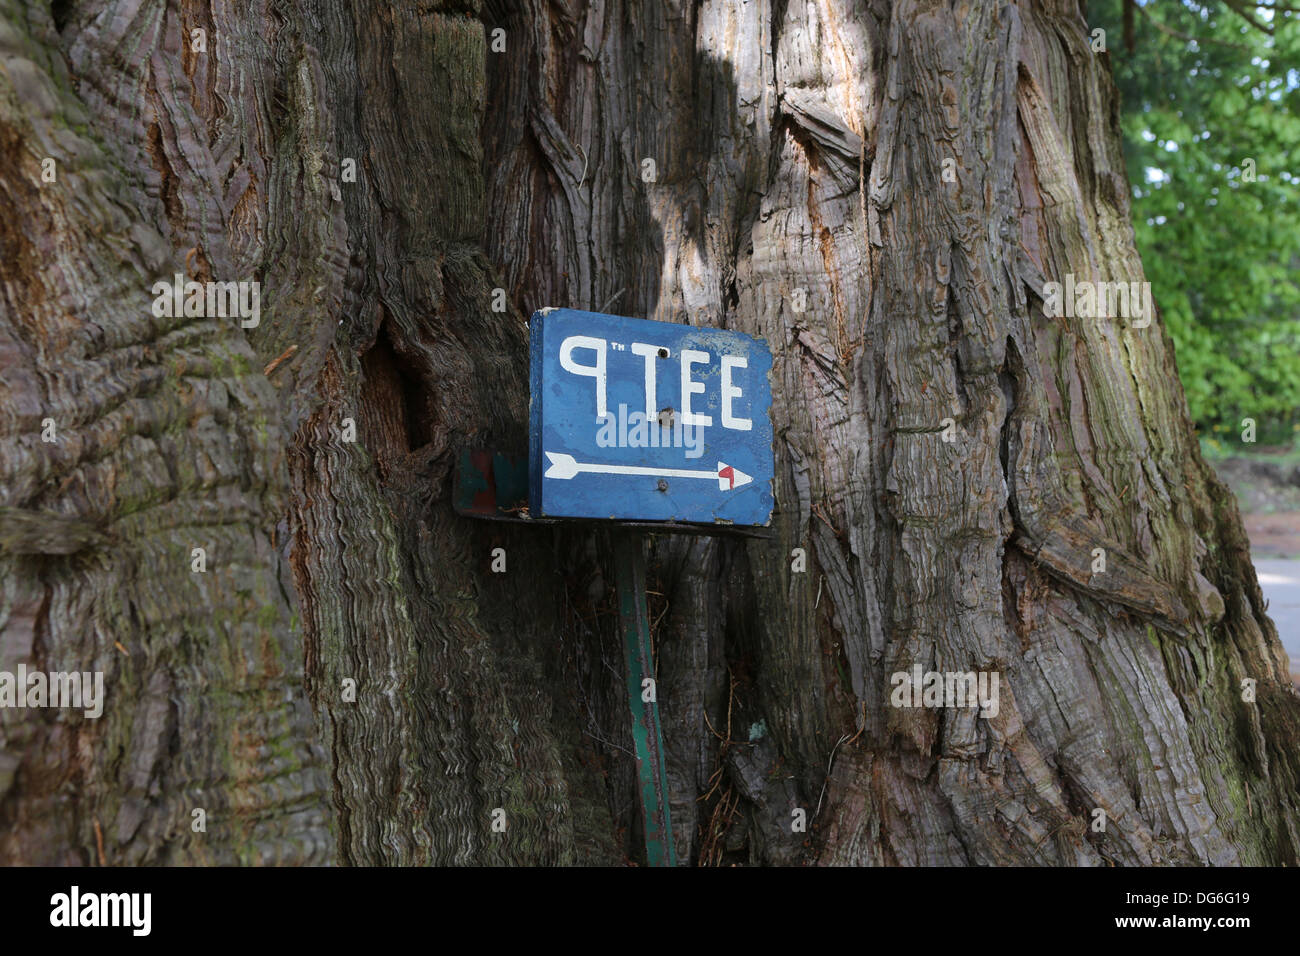 Blue Golf sign pointing the way for the 9th Tee nailed to a tree - Stock Image